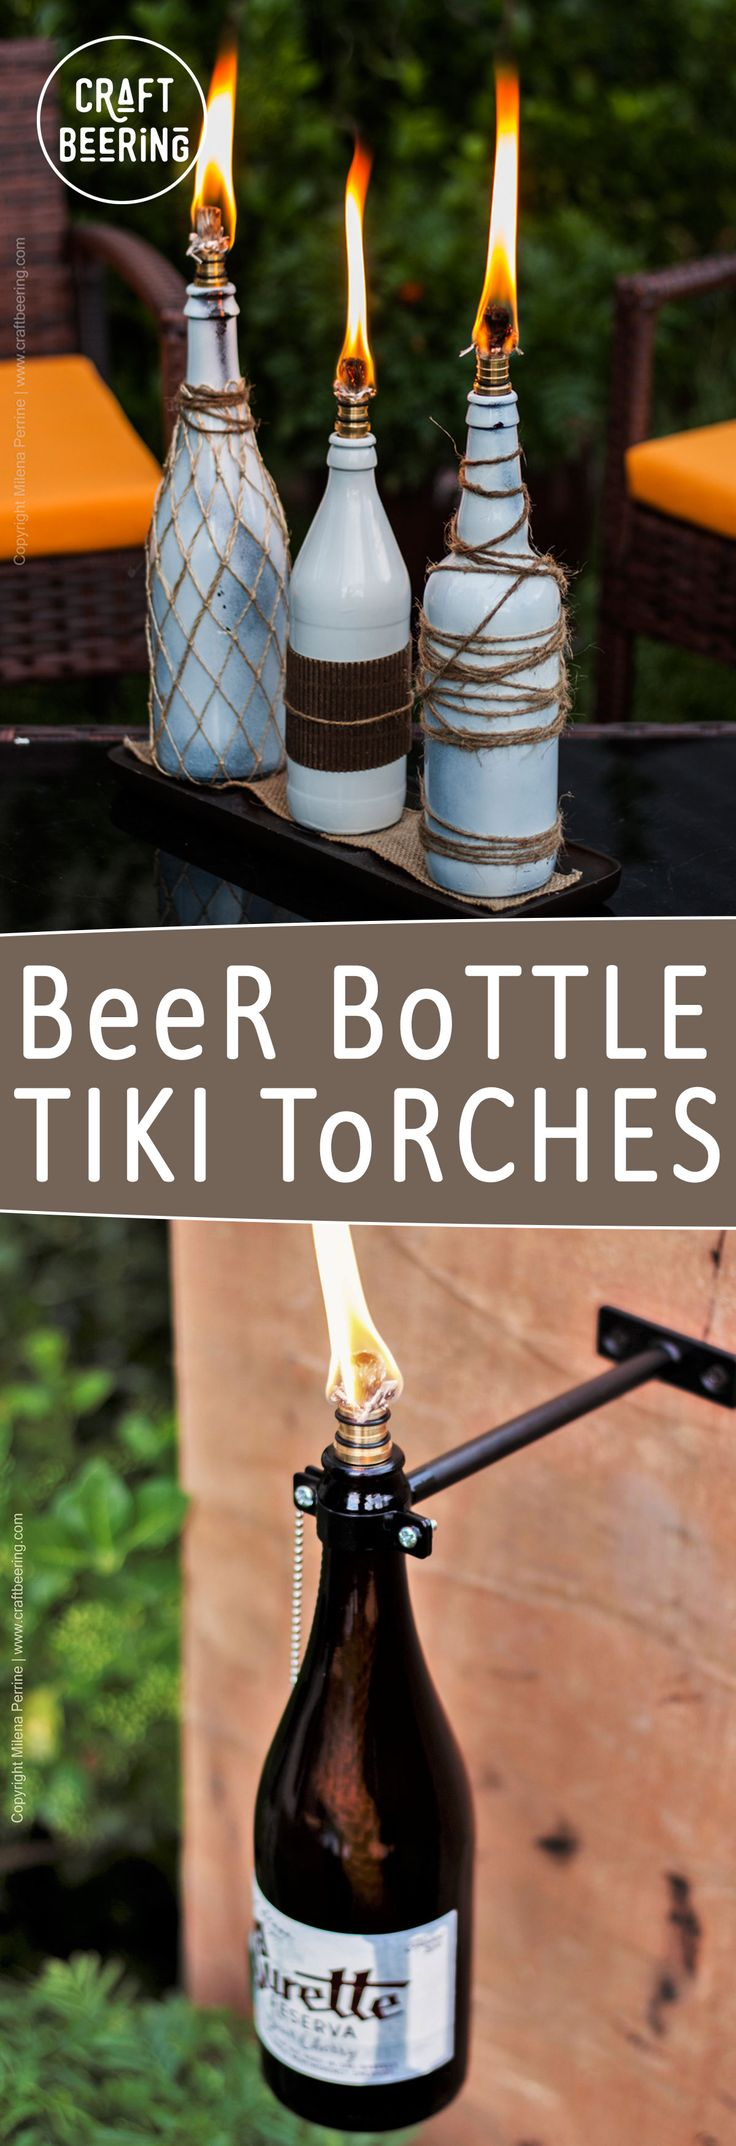 Beer bottle tiki torches. Mountable (use this kit - http://amzn.to/2uVHs8Y) or table top (with these wicks http://amzn.to/2uf8ydo )